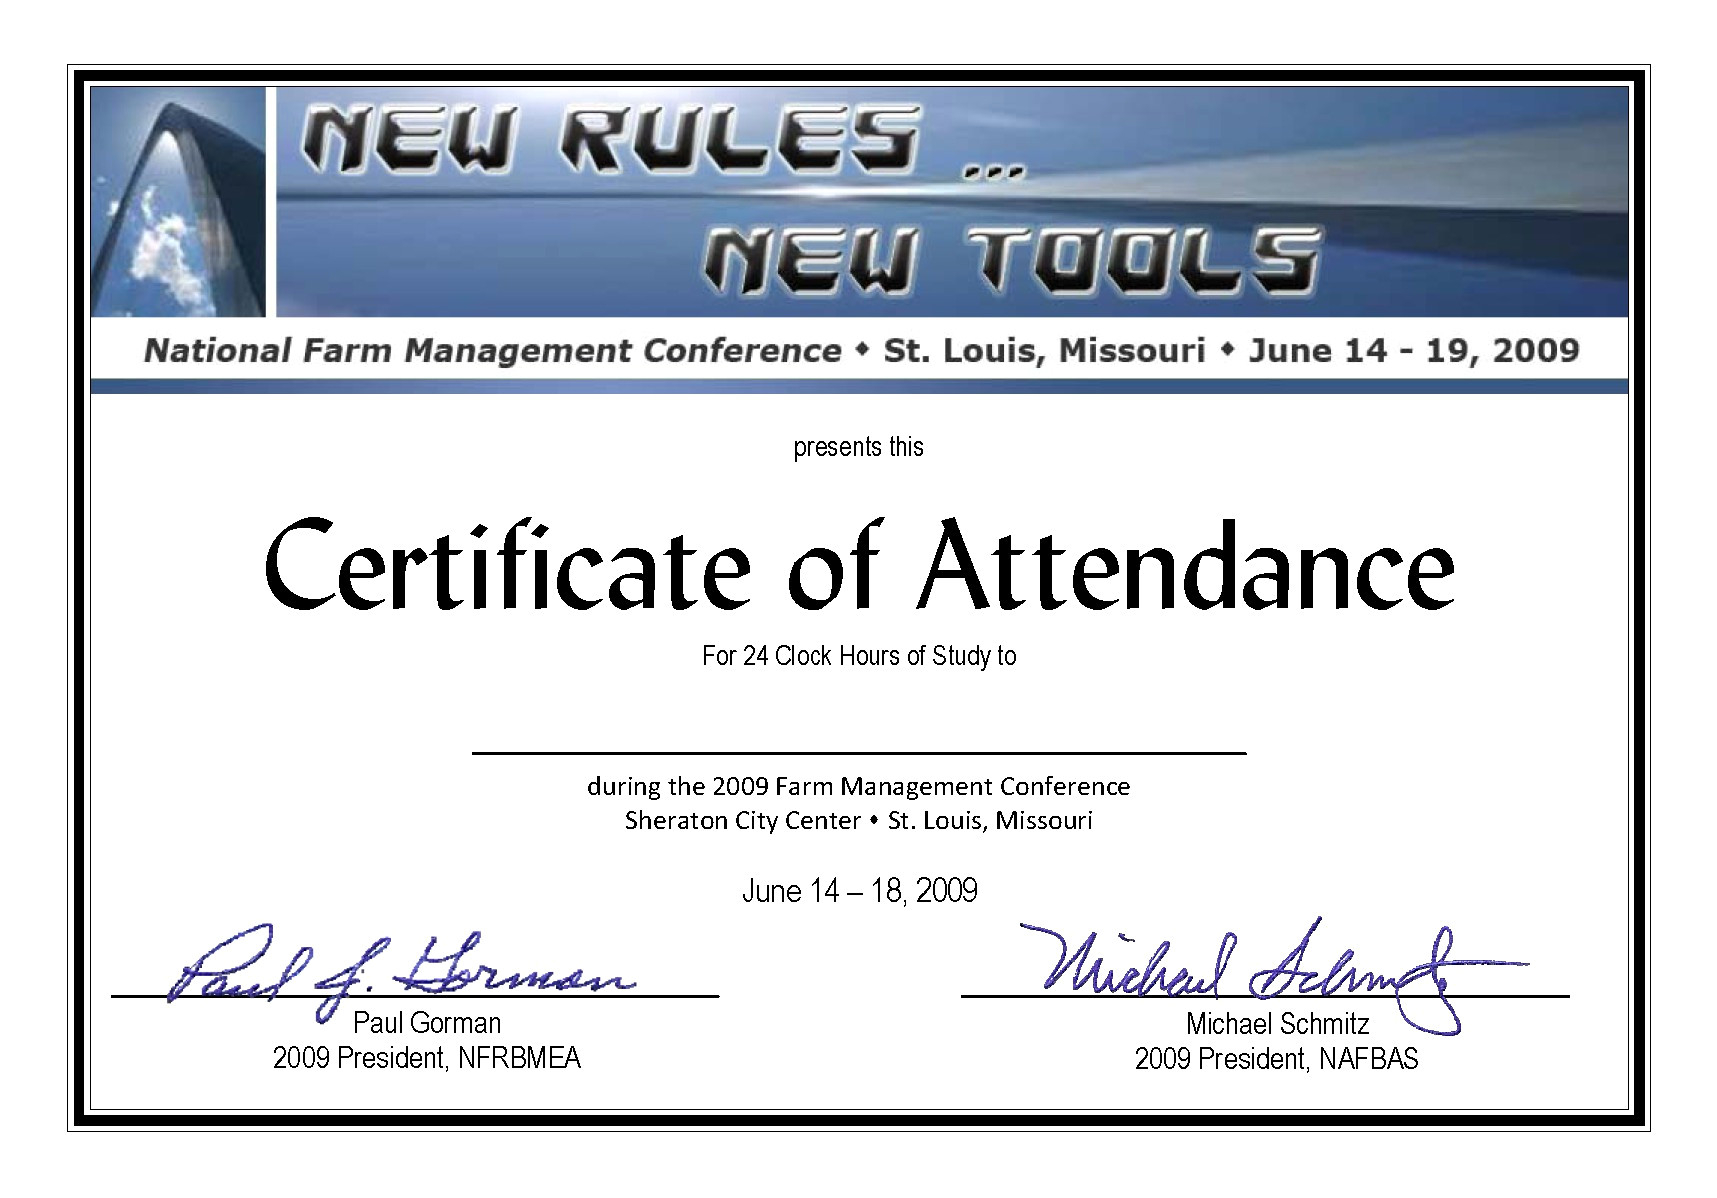 Templates Of Certificate Attendance Template Word For Perfect Sample With Regard To Conference Certificate Of Attendance Template